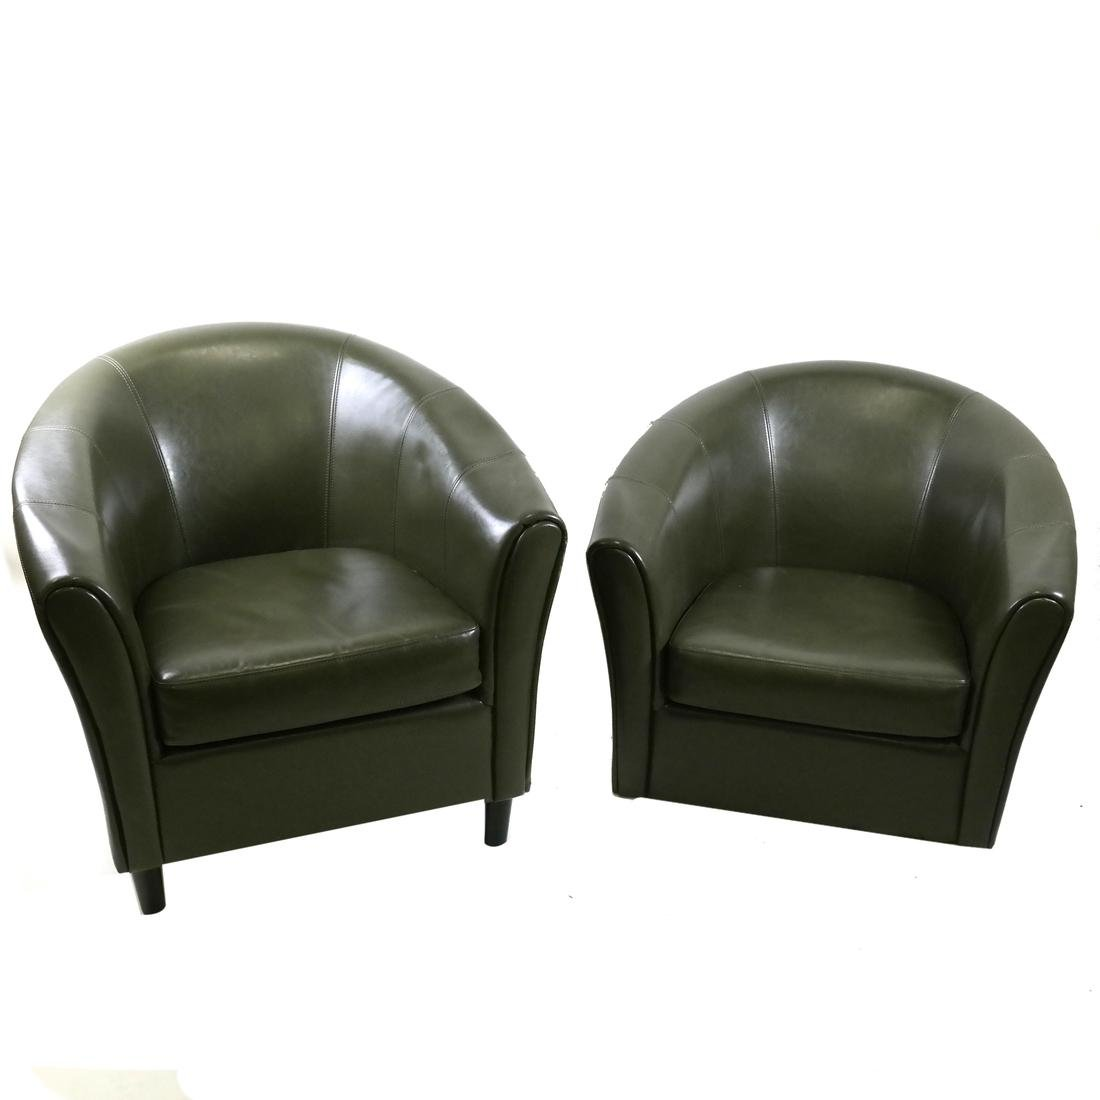 Pair of Green Club Chairs